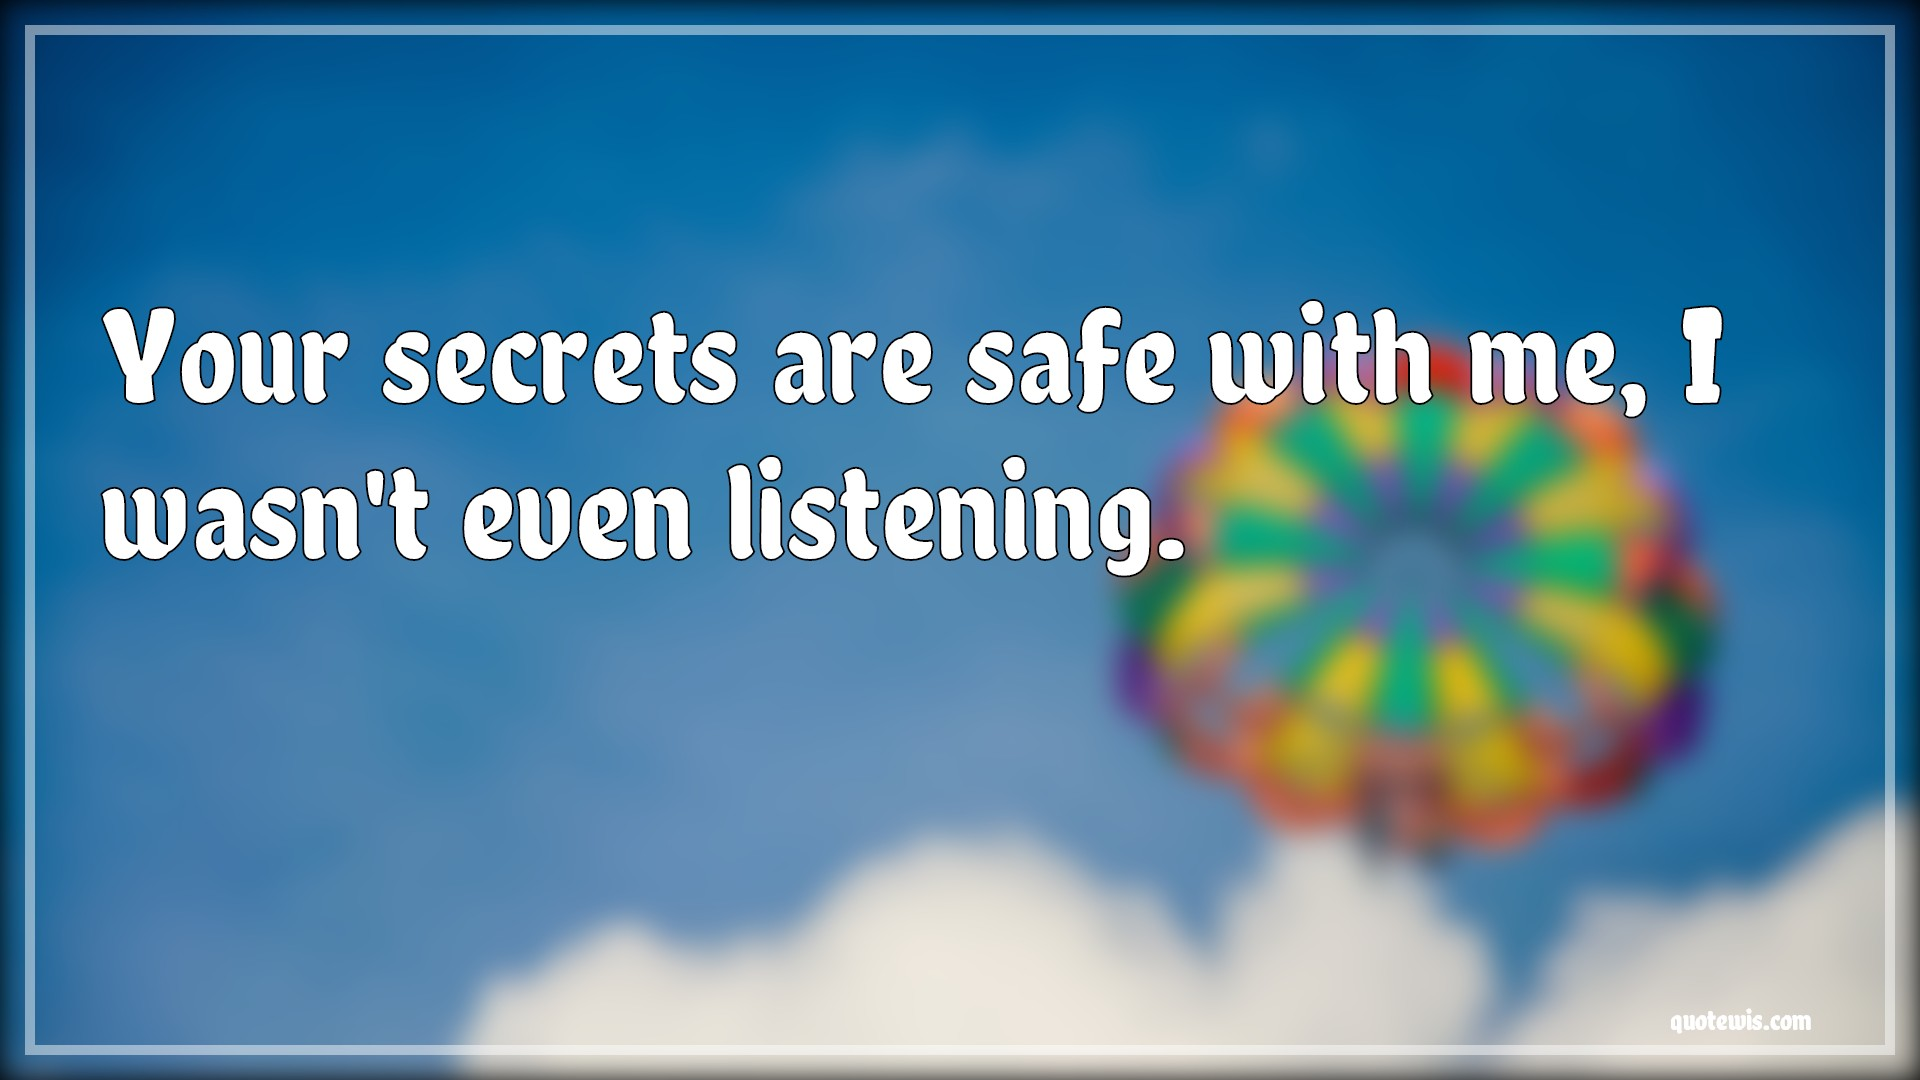 Your secrets are safe with me, I wasn't even listening.